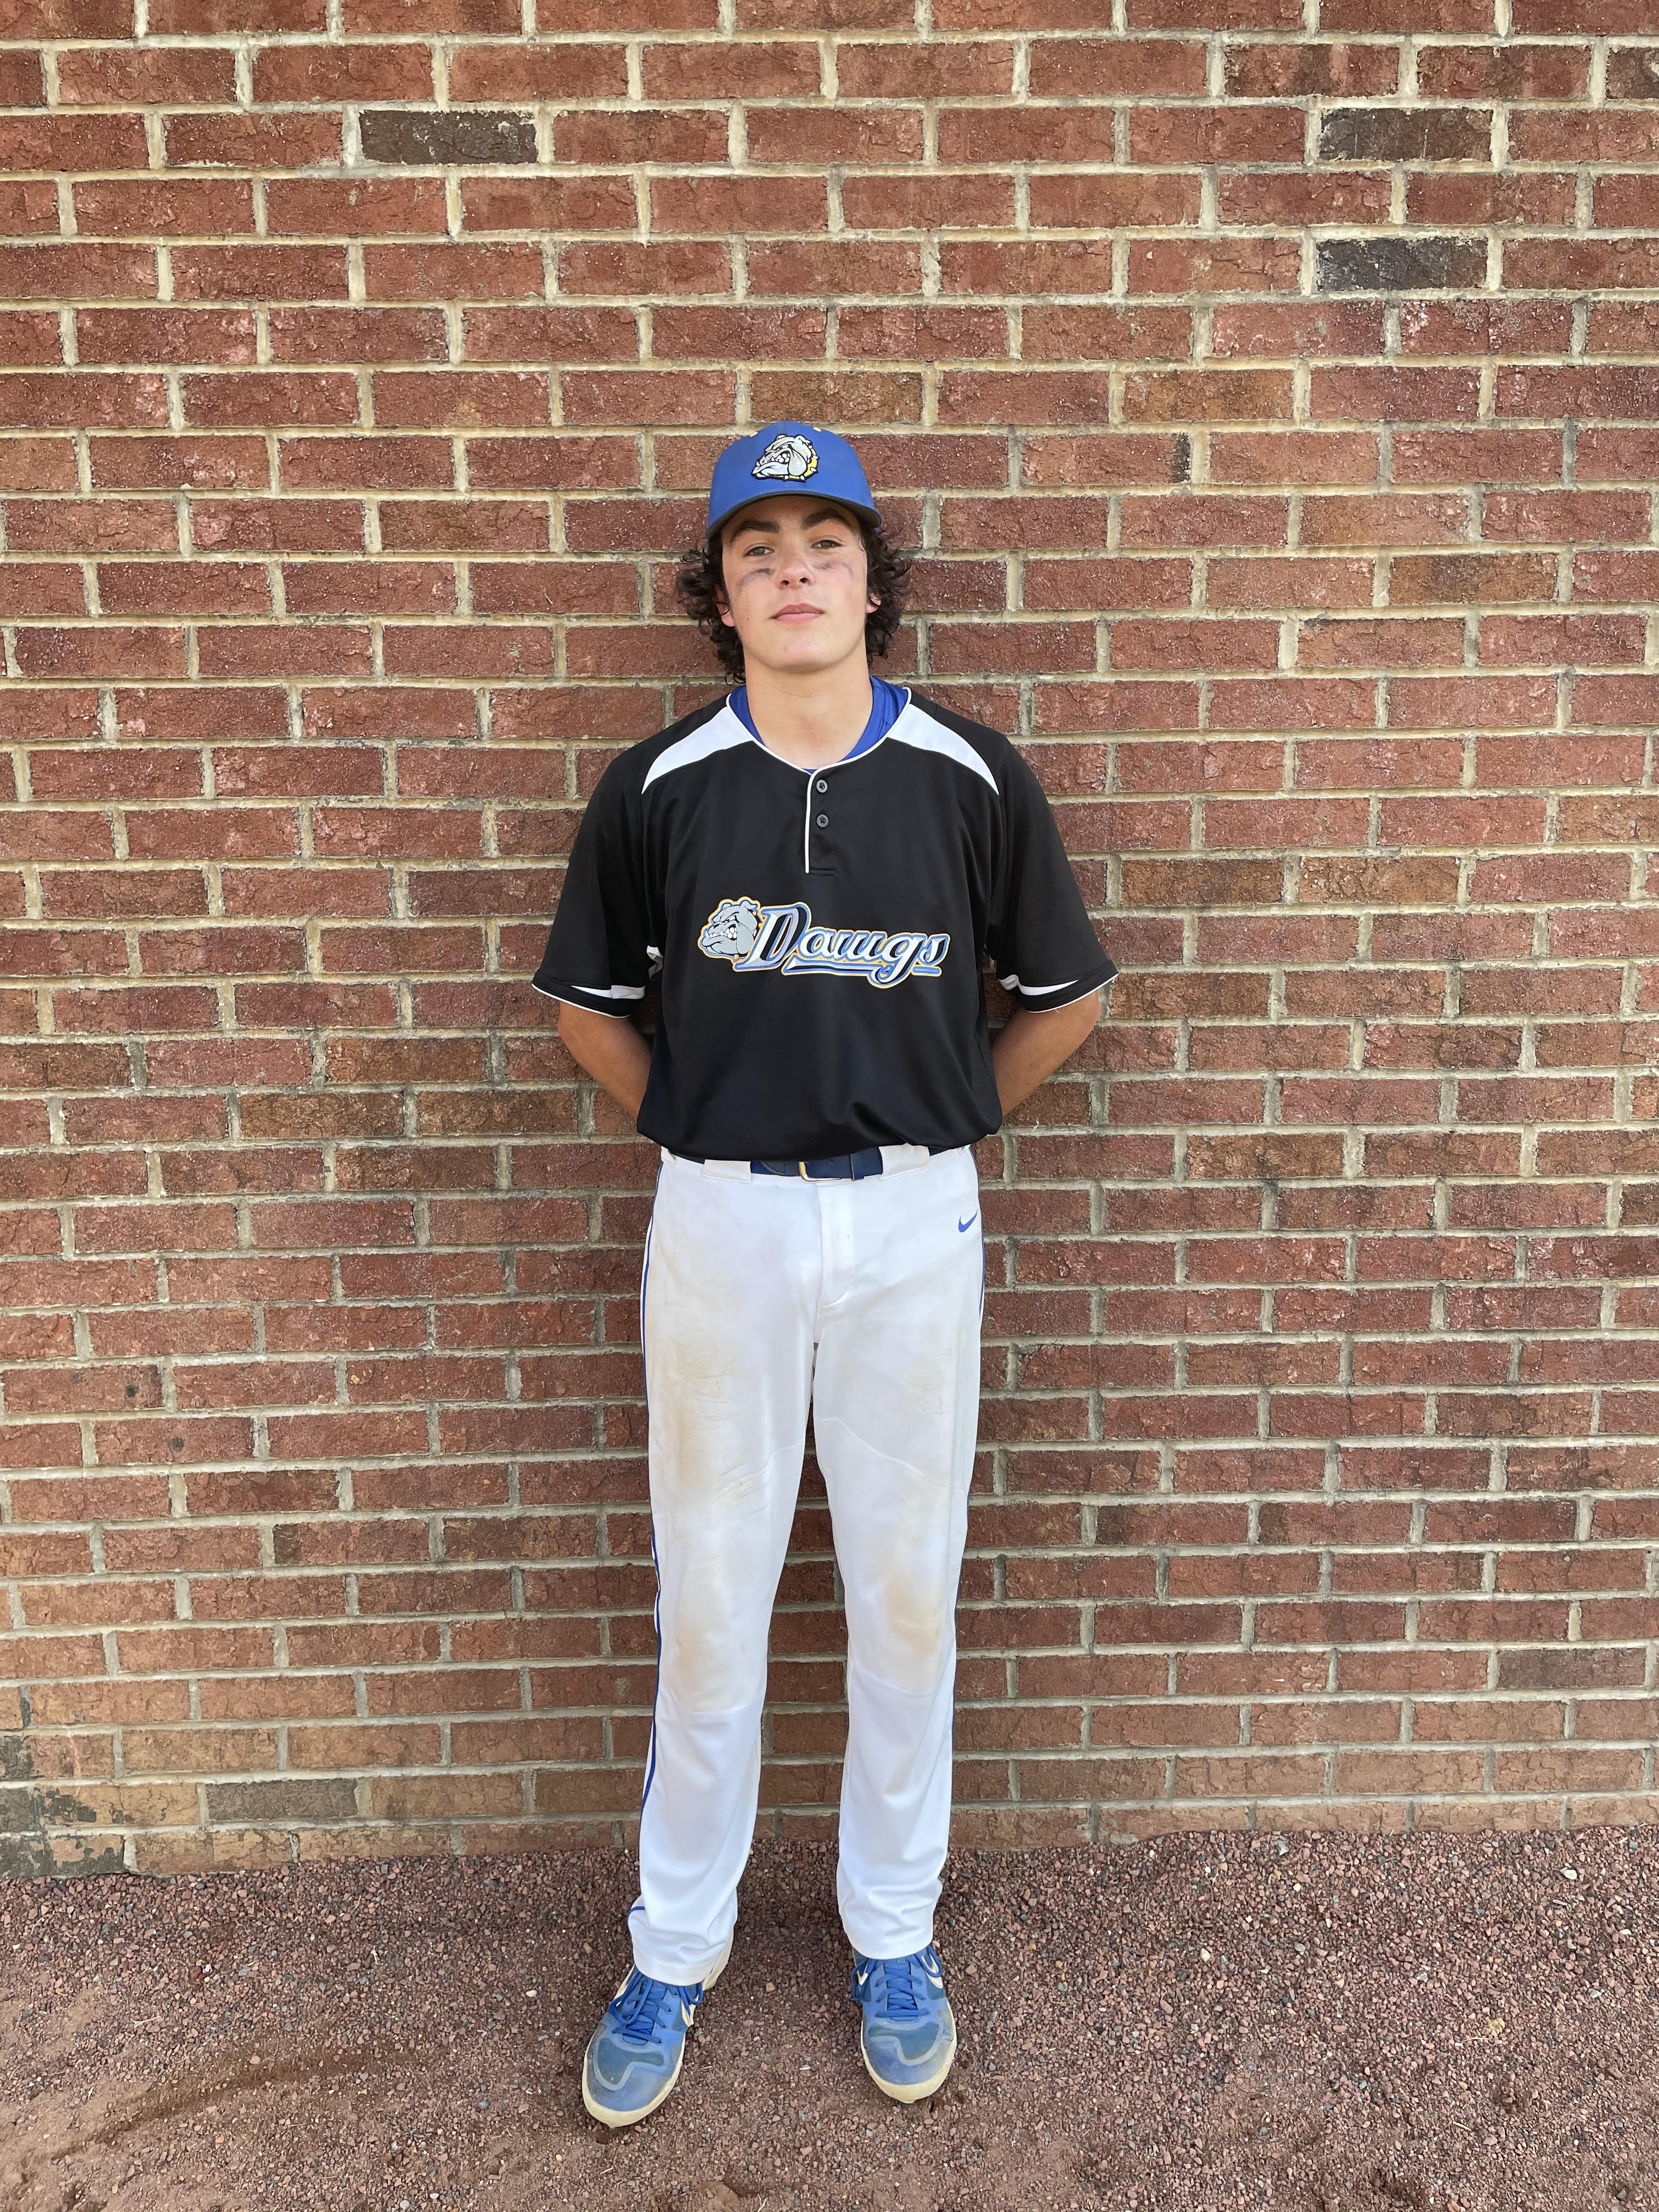 Athletes Of The Week: Trace Hickman